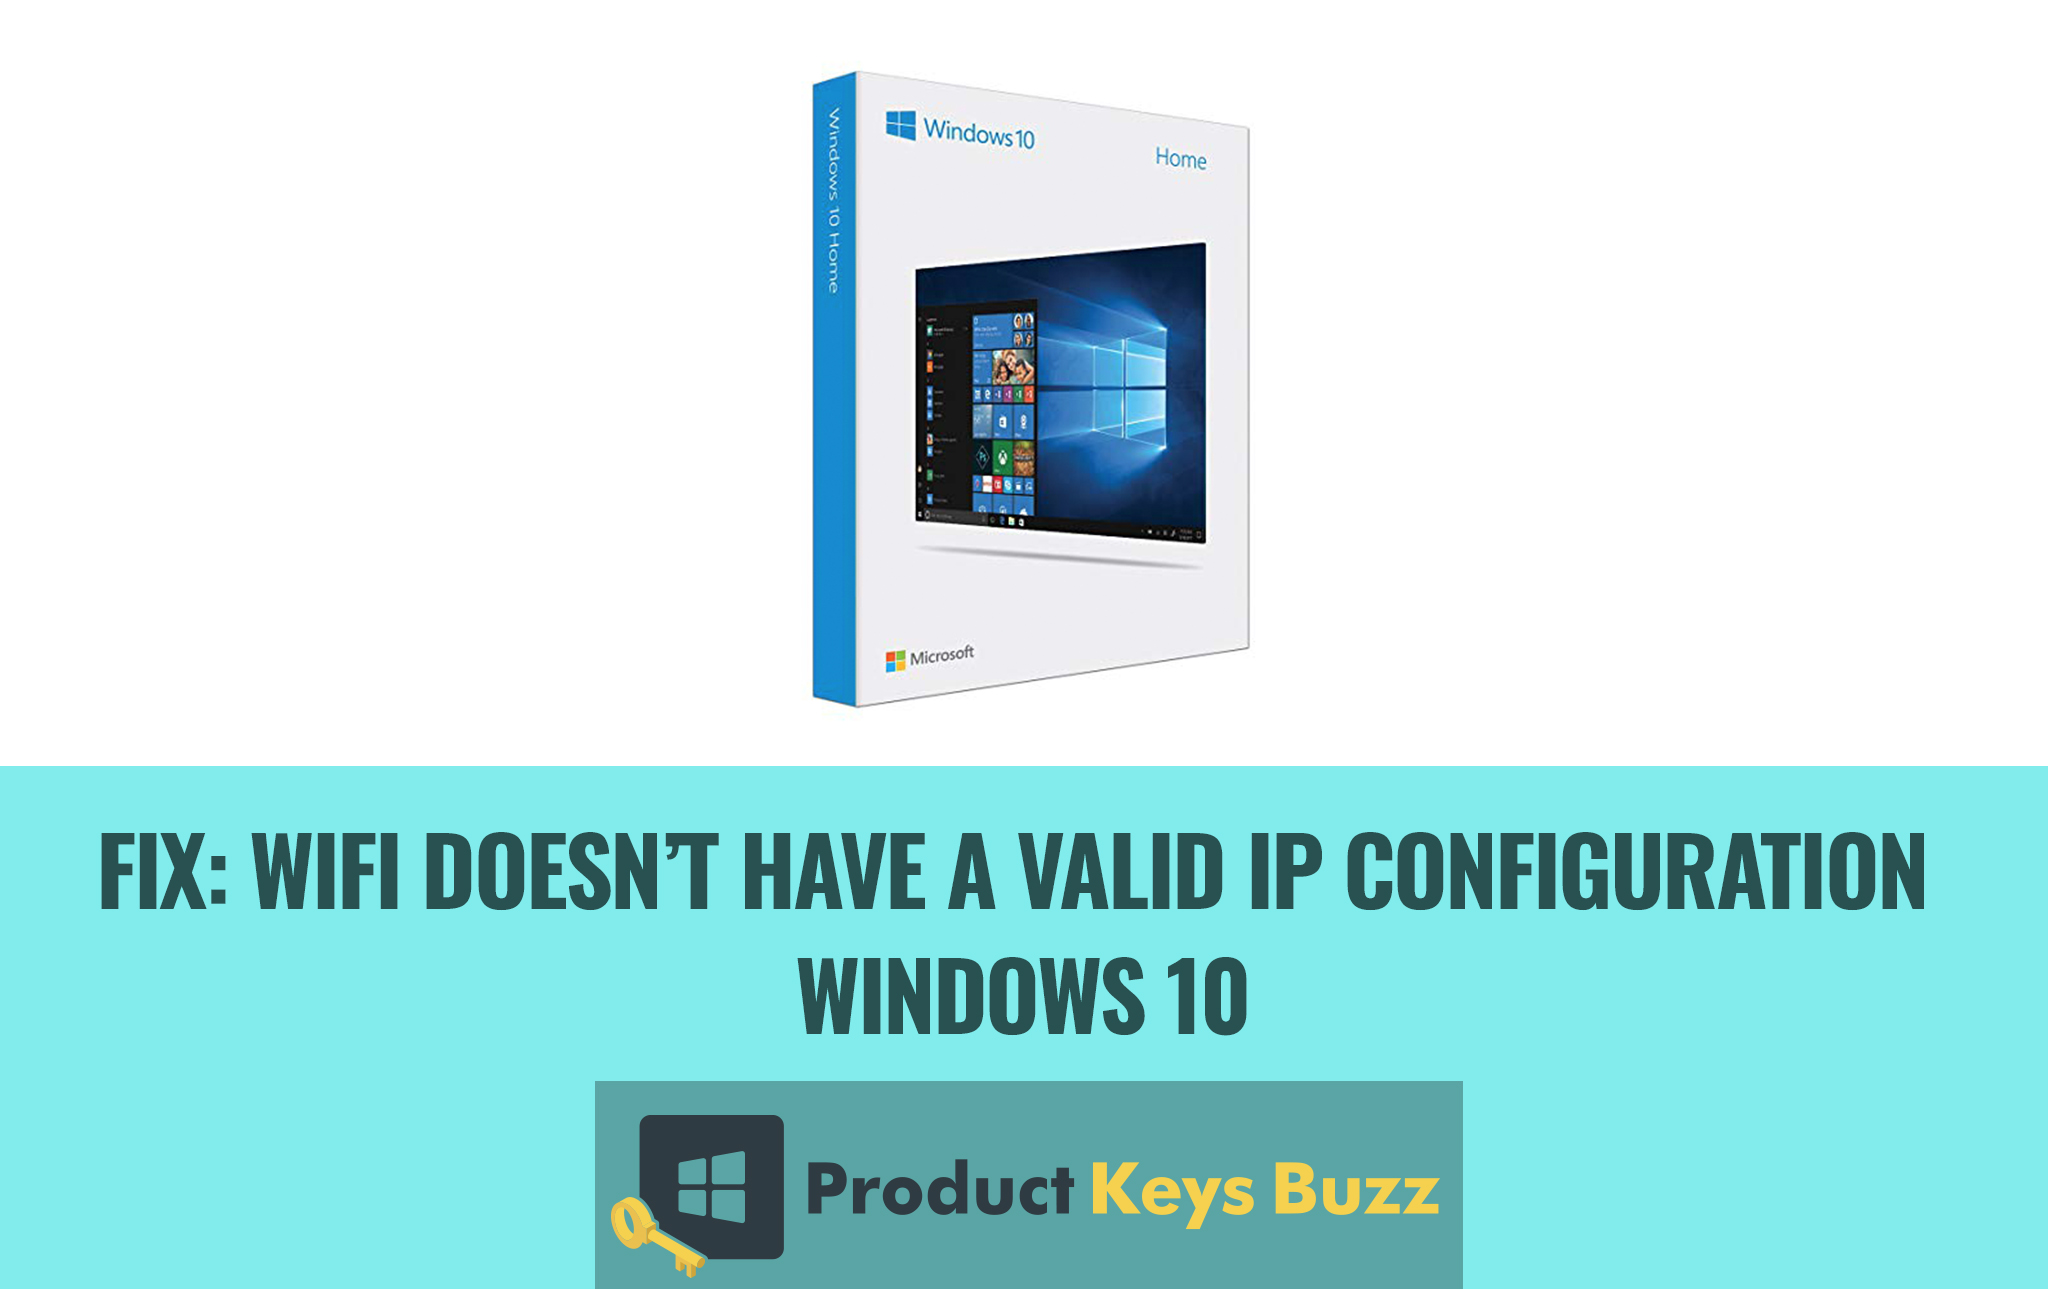 Fix Wifi doesn't have a valid IP configuration windows 10